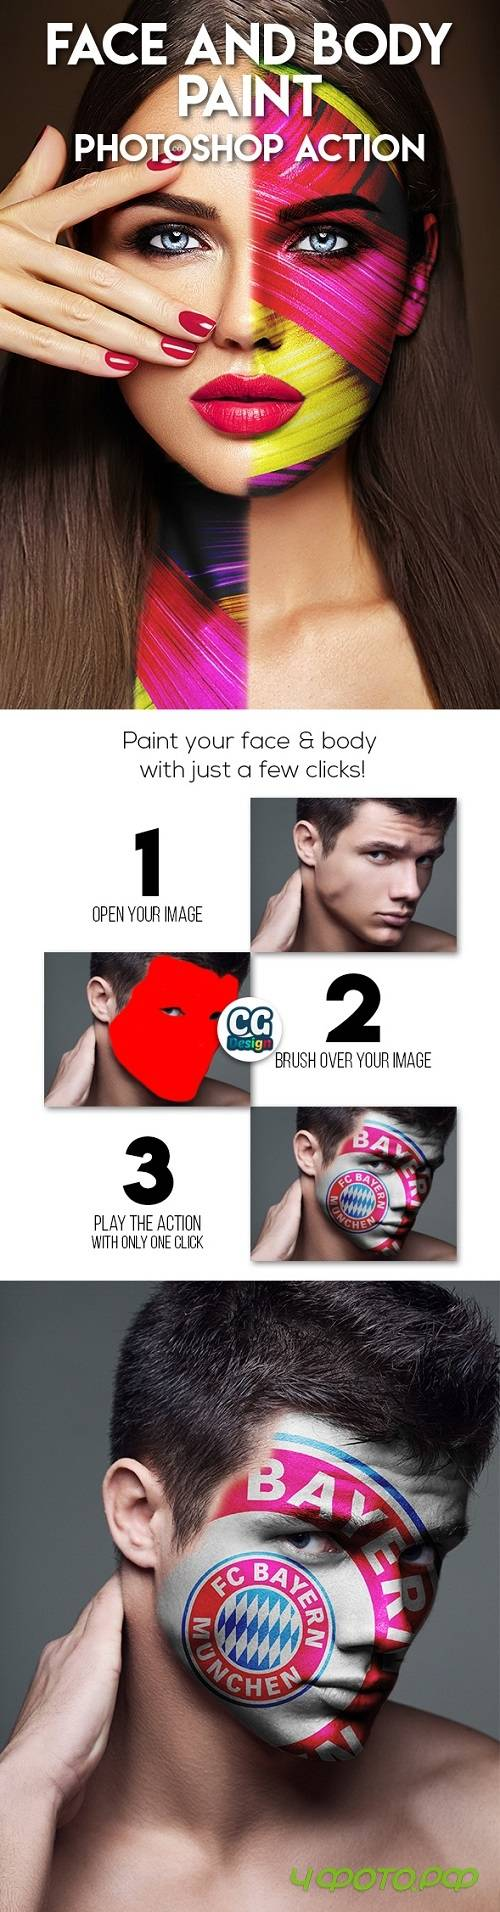 Face and Body Paint Photoshop Action 21494159